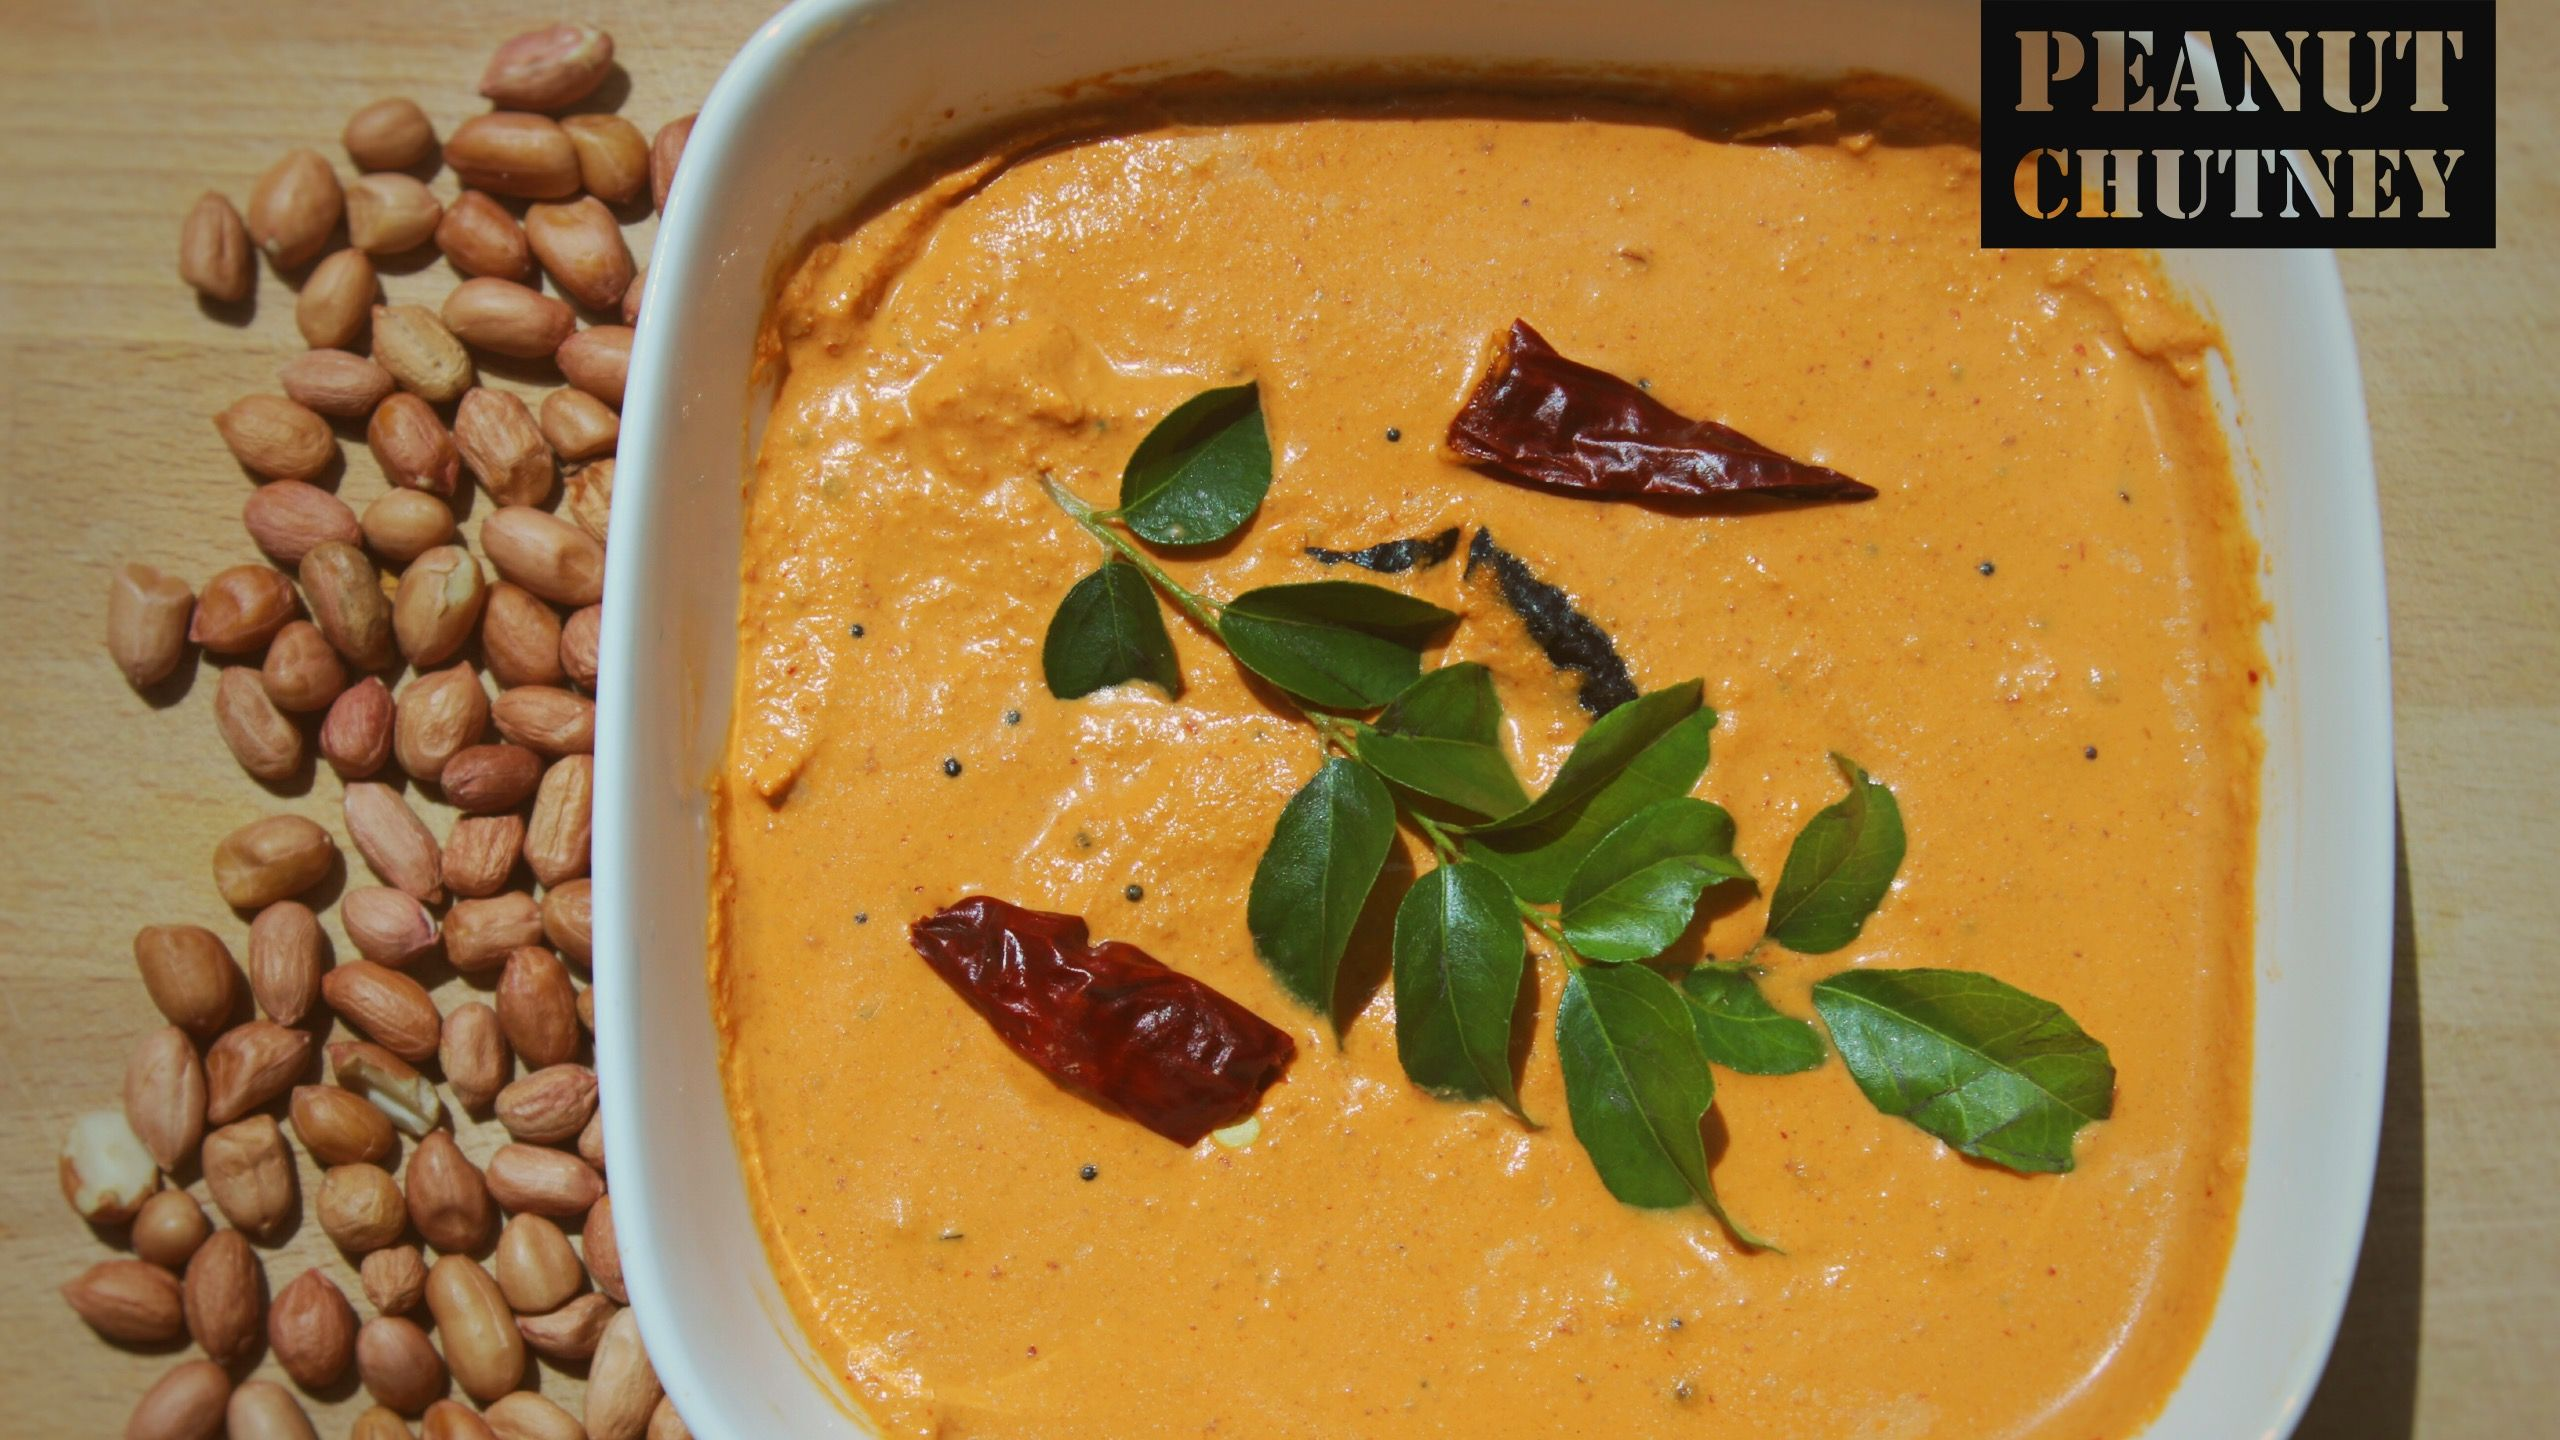 Nutritious peanut chutneytailed video in my youtube channel nutritious peanut chutneytailed video in my youtube channel indian recipeschutneyprofilevegetarian recipeslinkyoutubehealthy foodyoutubers healthy forumfinder Choice Image